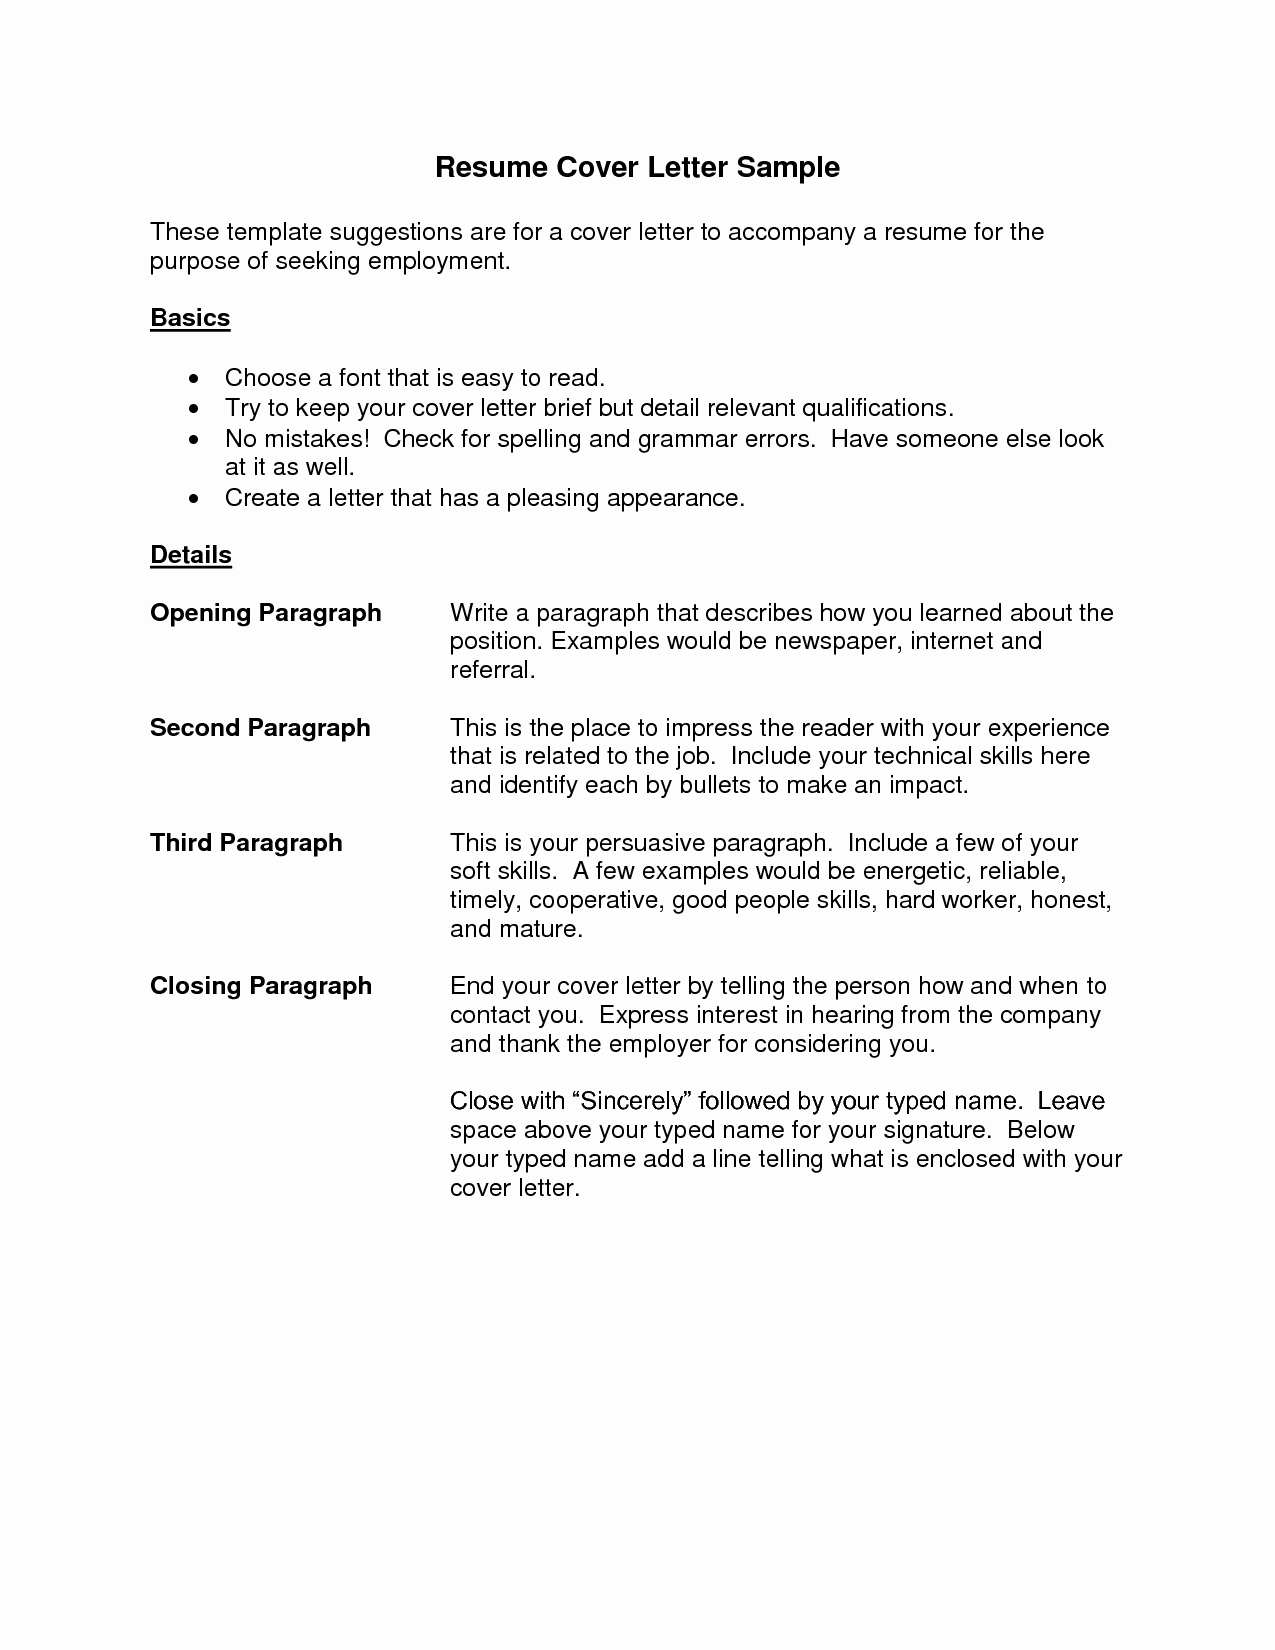 Free Cover Letter for Resume Awesome Cover Letter Resume Best Templatesimple Cover Letter